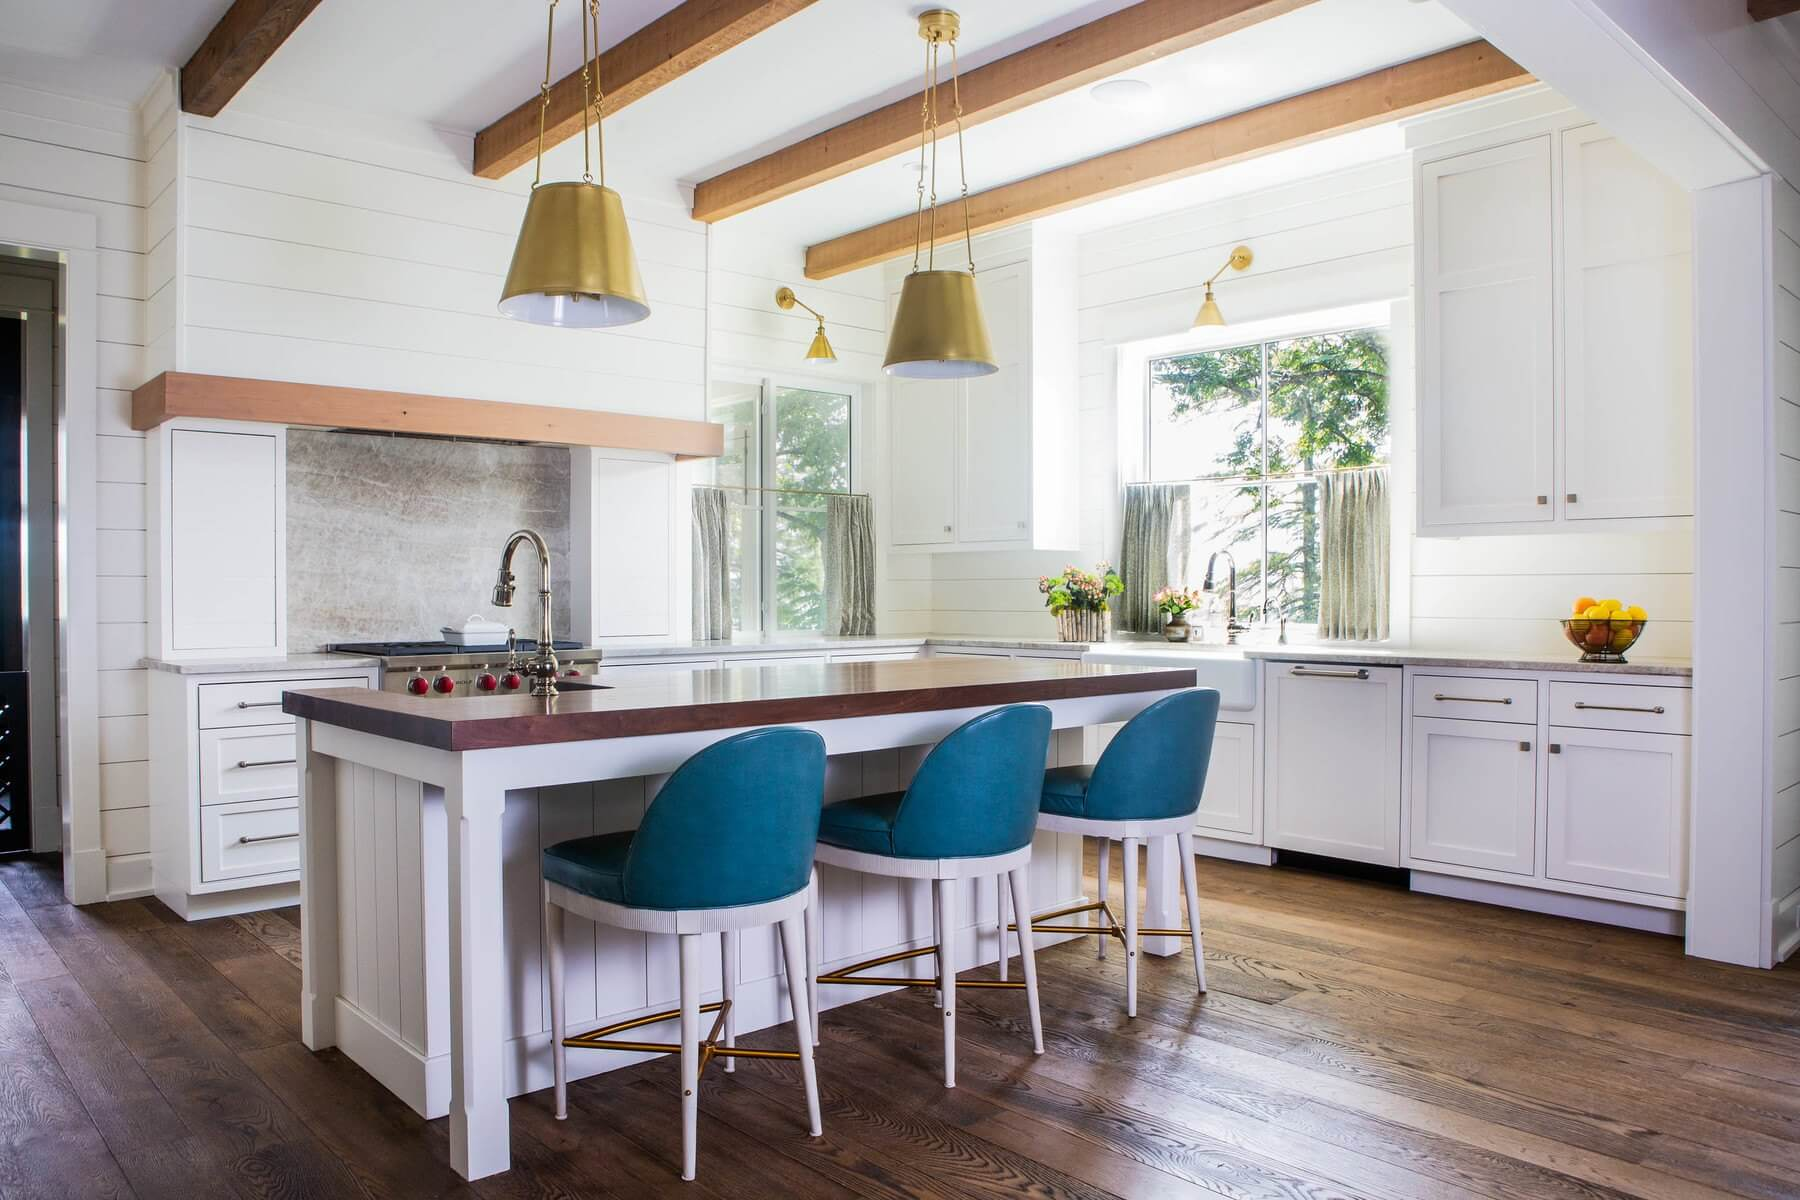 Images Of Modern Farmhouse Interiors A Modern Farmhouse In The Delta Chic Style And Classic